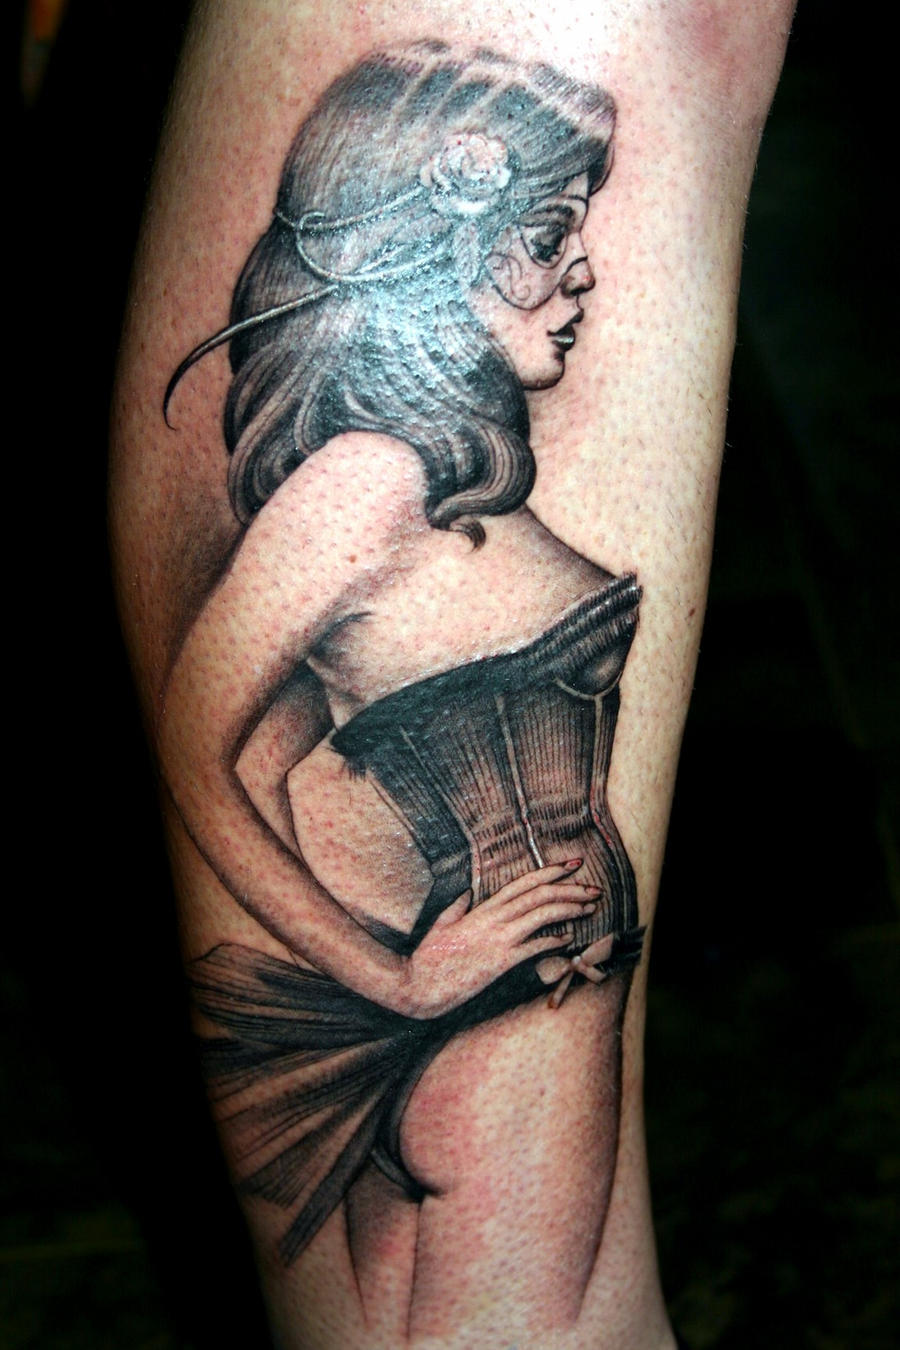 Pinup Tattoo By Mpdesign On Deviantart